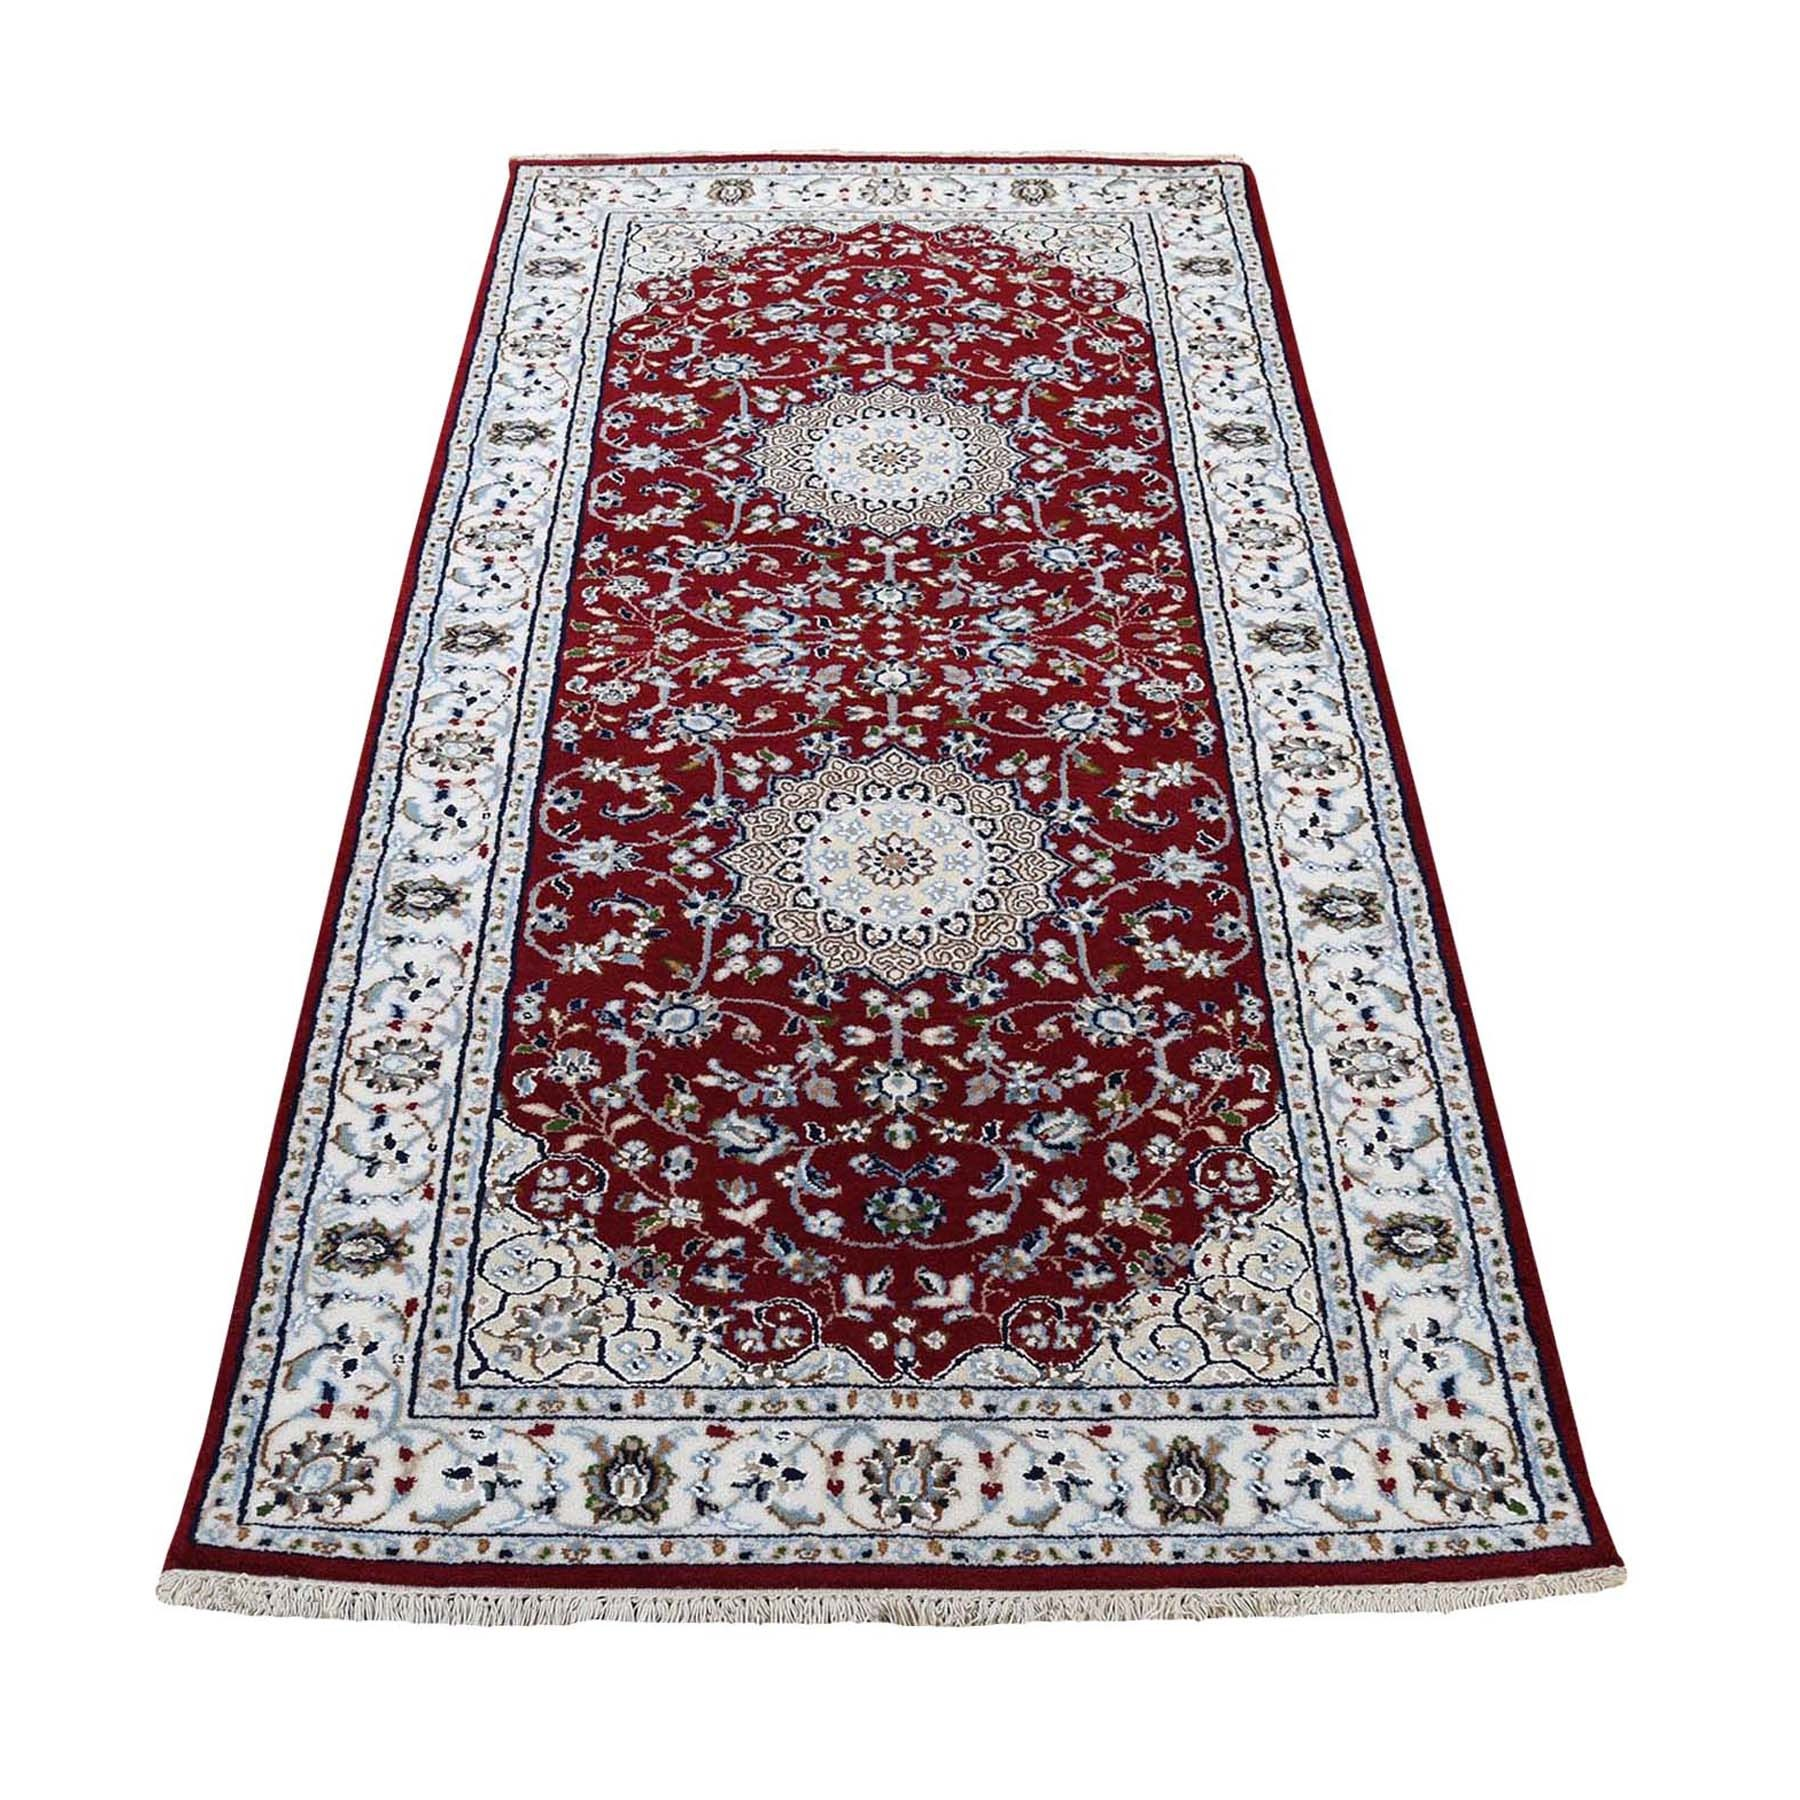 "2'7""x6' Red Runner Nain Wool And Silk 250 KPSI Hand Knotted Oriental Rug"